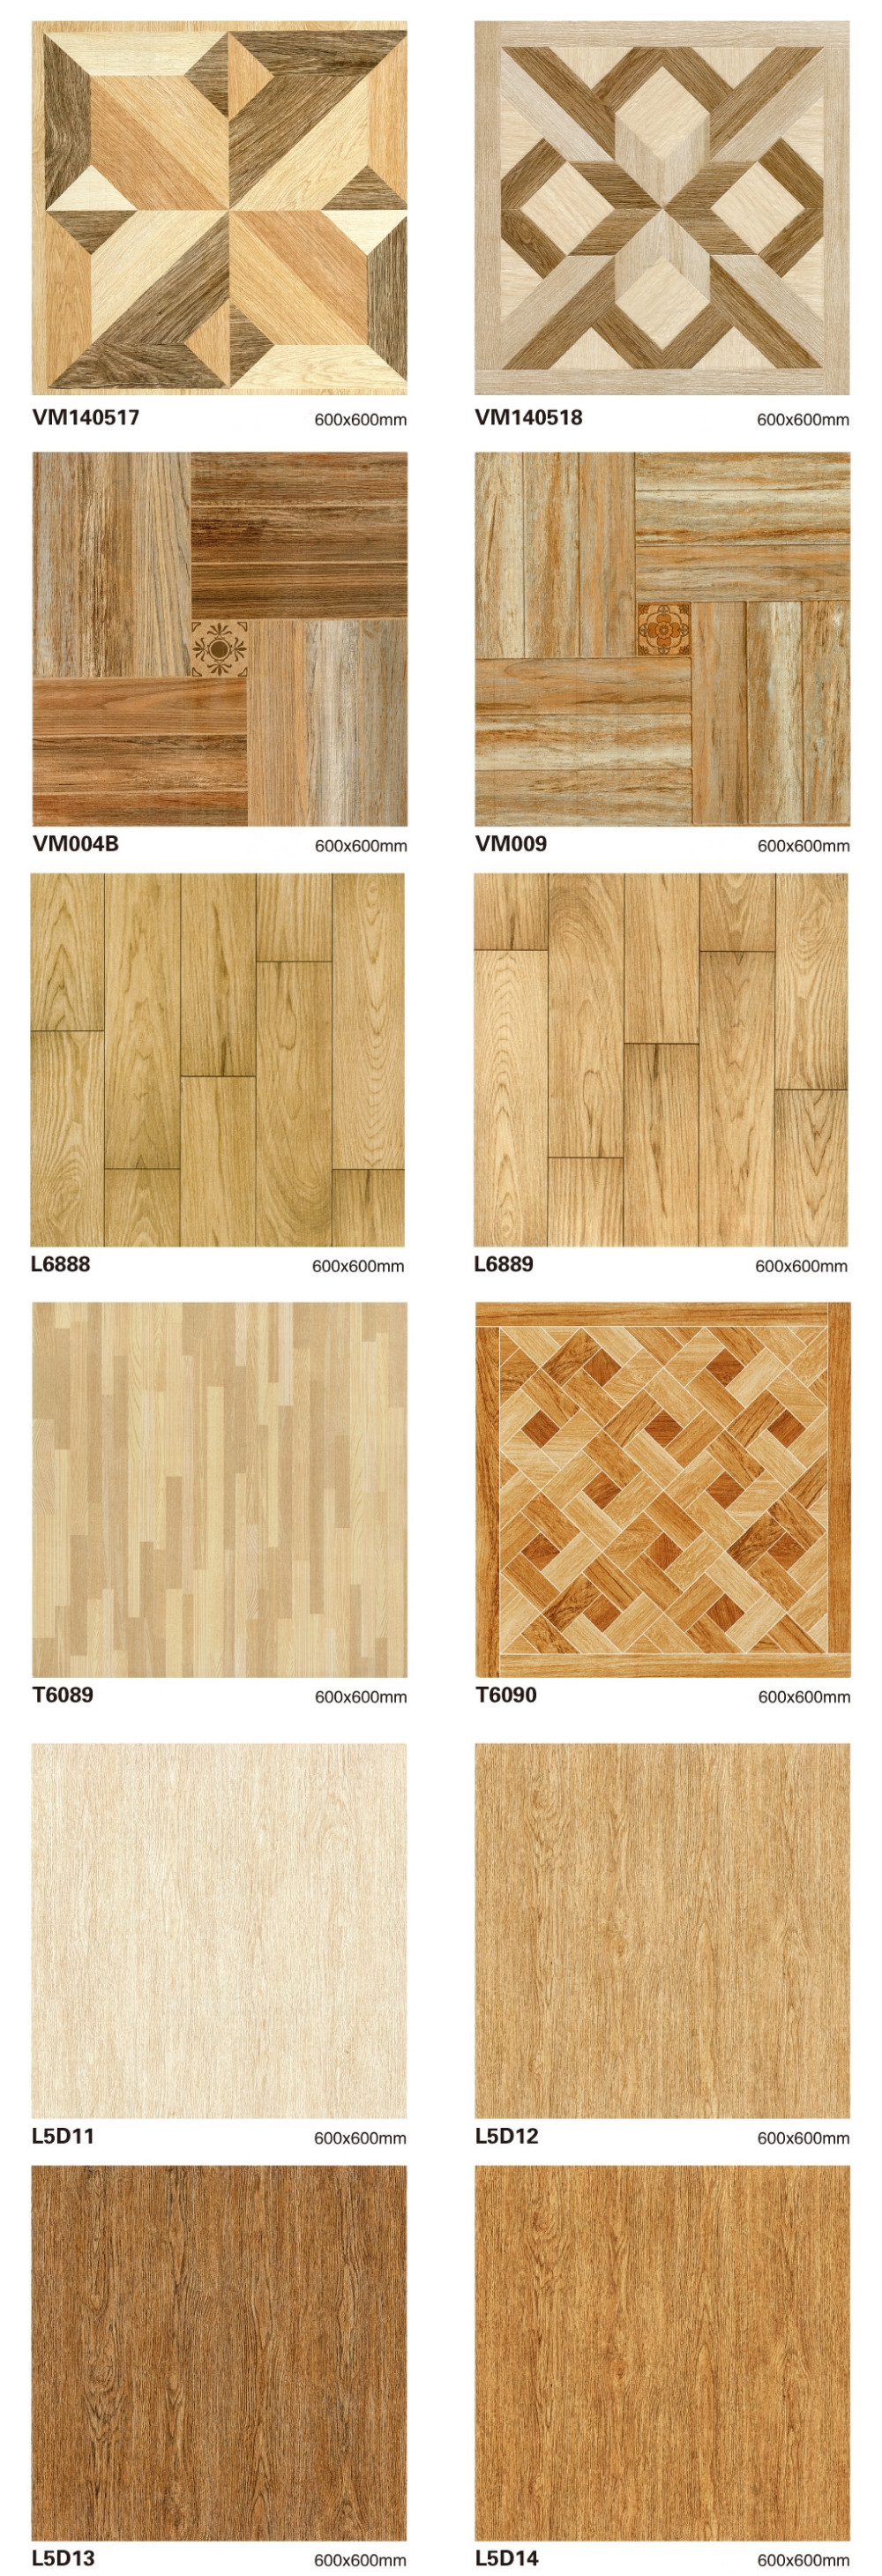 600x600mm wood look ceramic floor tile price in philippines view 600x600mm wood look ceramic floor tile price in philippines dailygadgetfo Gallery